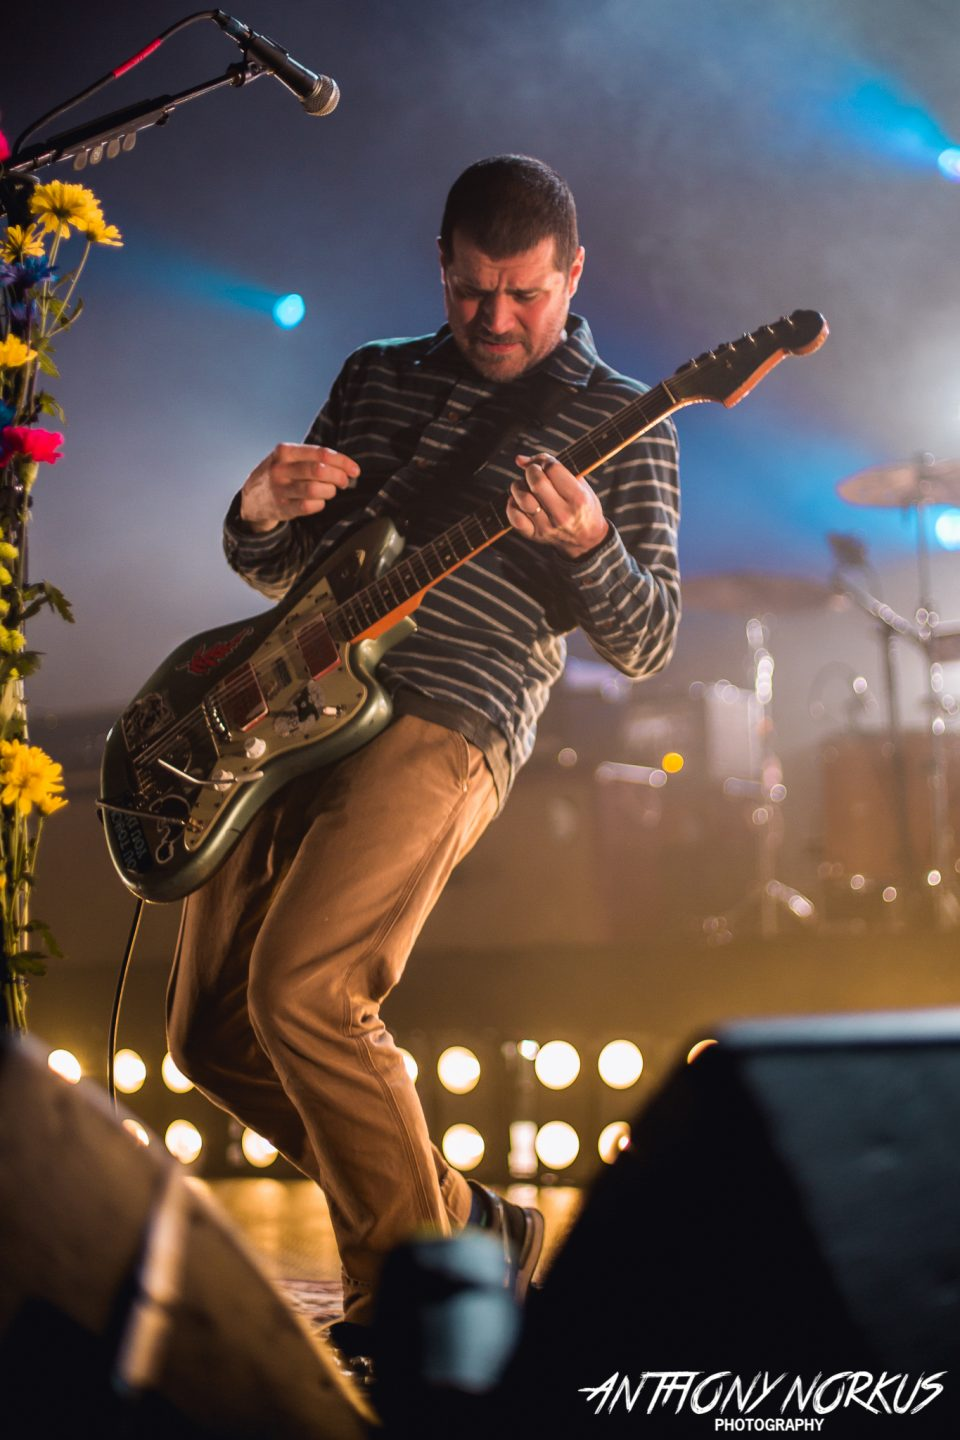 brand new adds to cult legacy with fan pleasing grand rapids tour stop gallery image